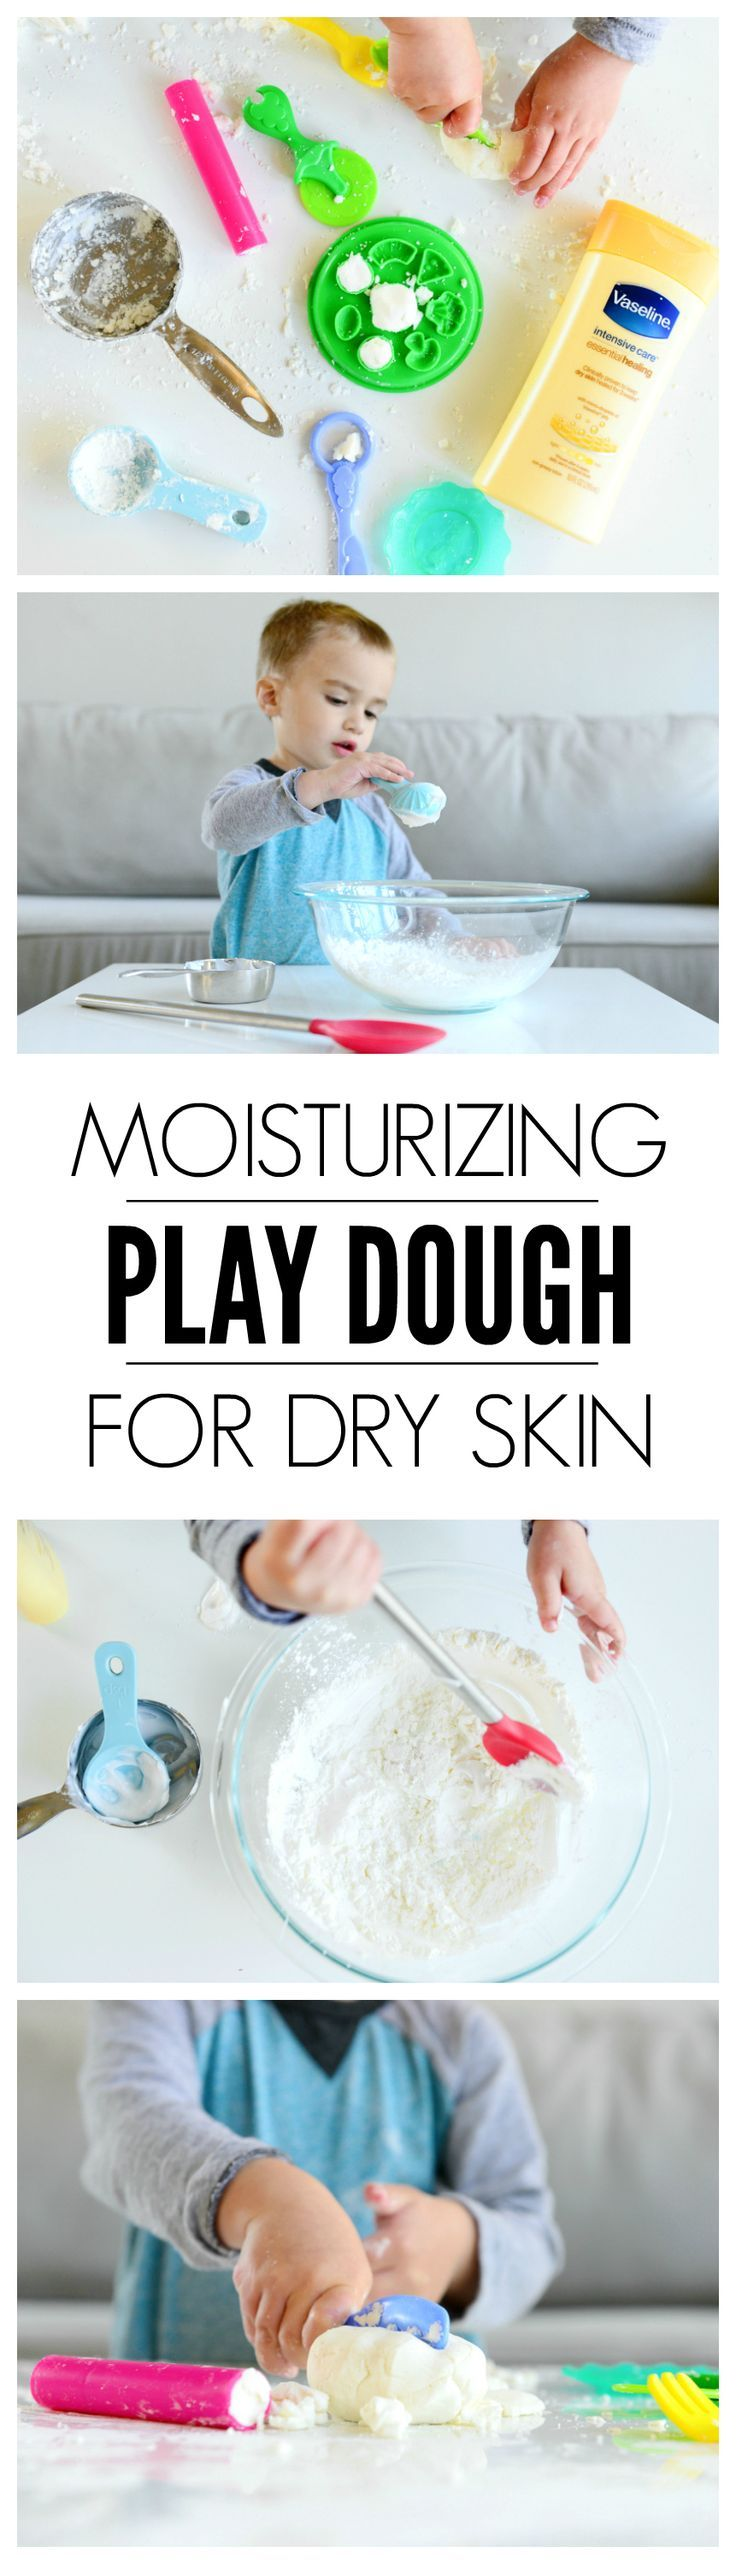 FUN for the kids AND like a mini spa treatment for your hands! This play doh recipe for dry skin is PERFECT!    Moisturizing Play Dough | Moisturizing Play Doh for Dry Skin | Play Doh recipe for dry skin from Hello Splendid vaselinepartner #AD Vaseline Essential Healing Lotion leaves my family's skin deeply moisturized.